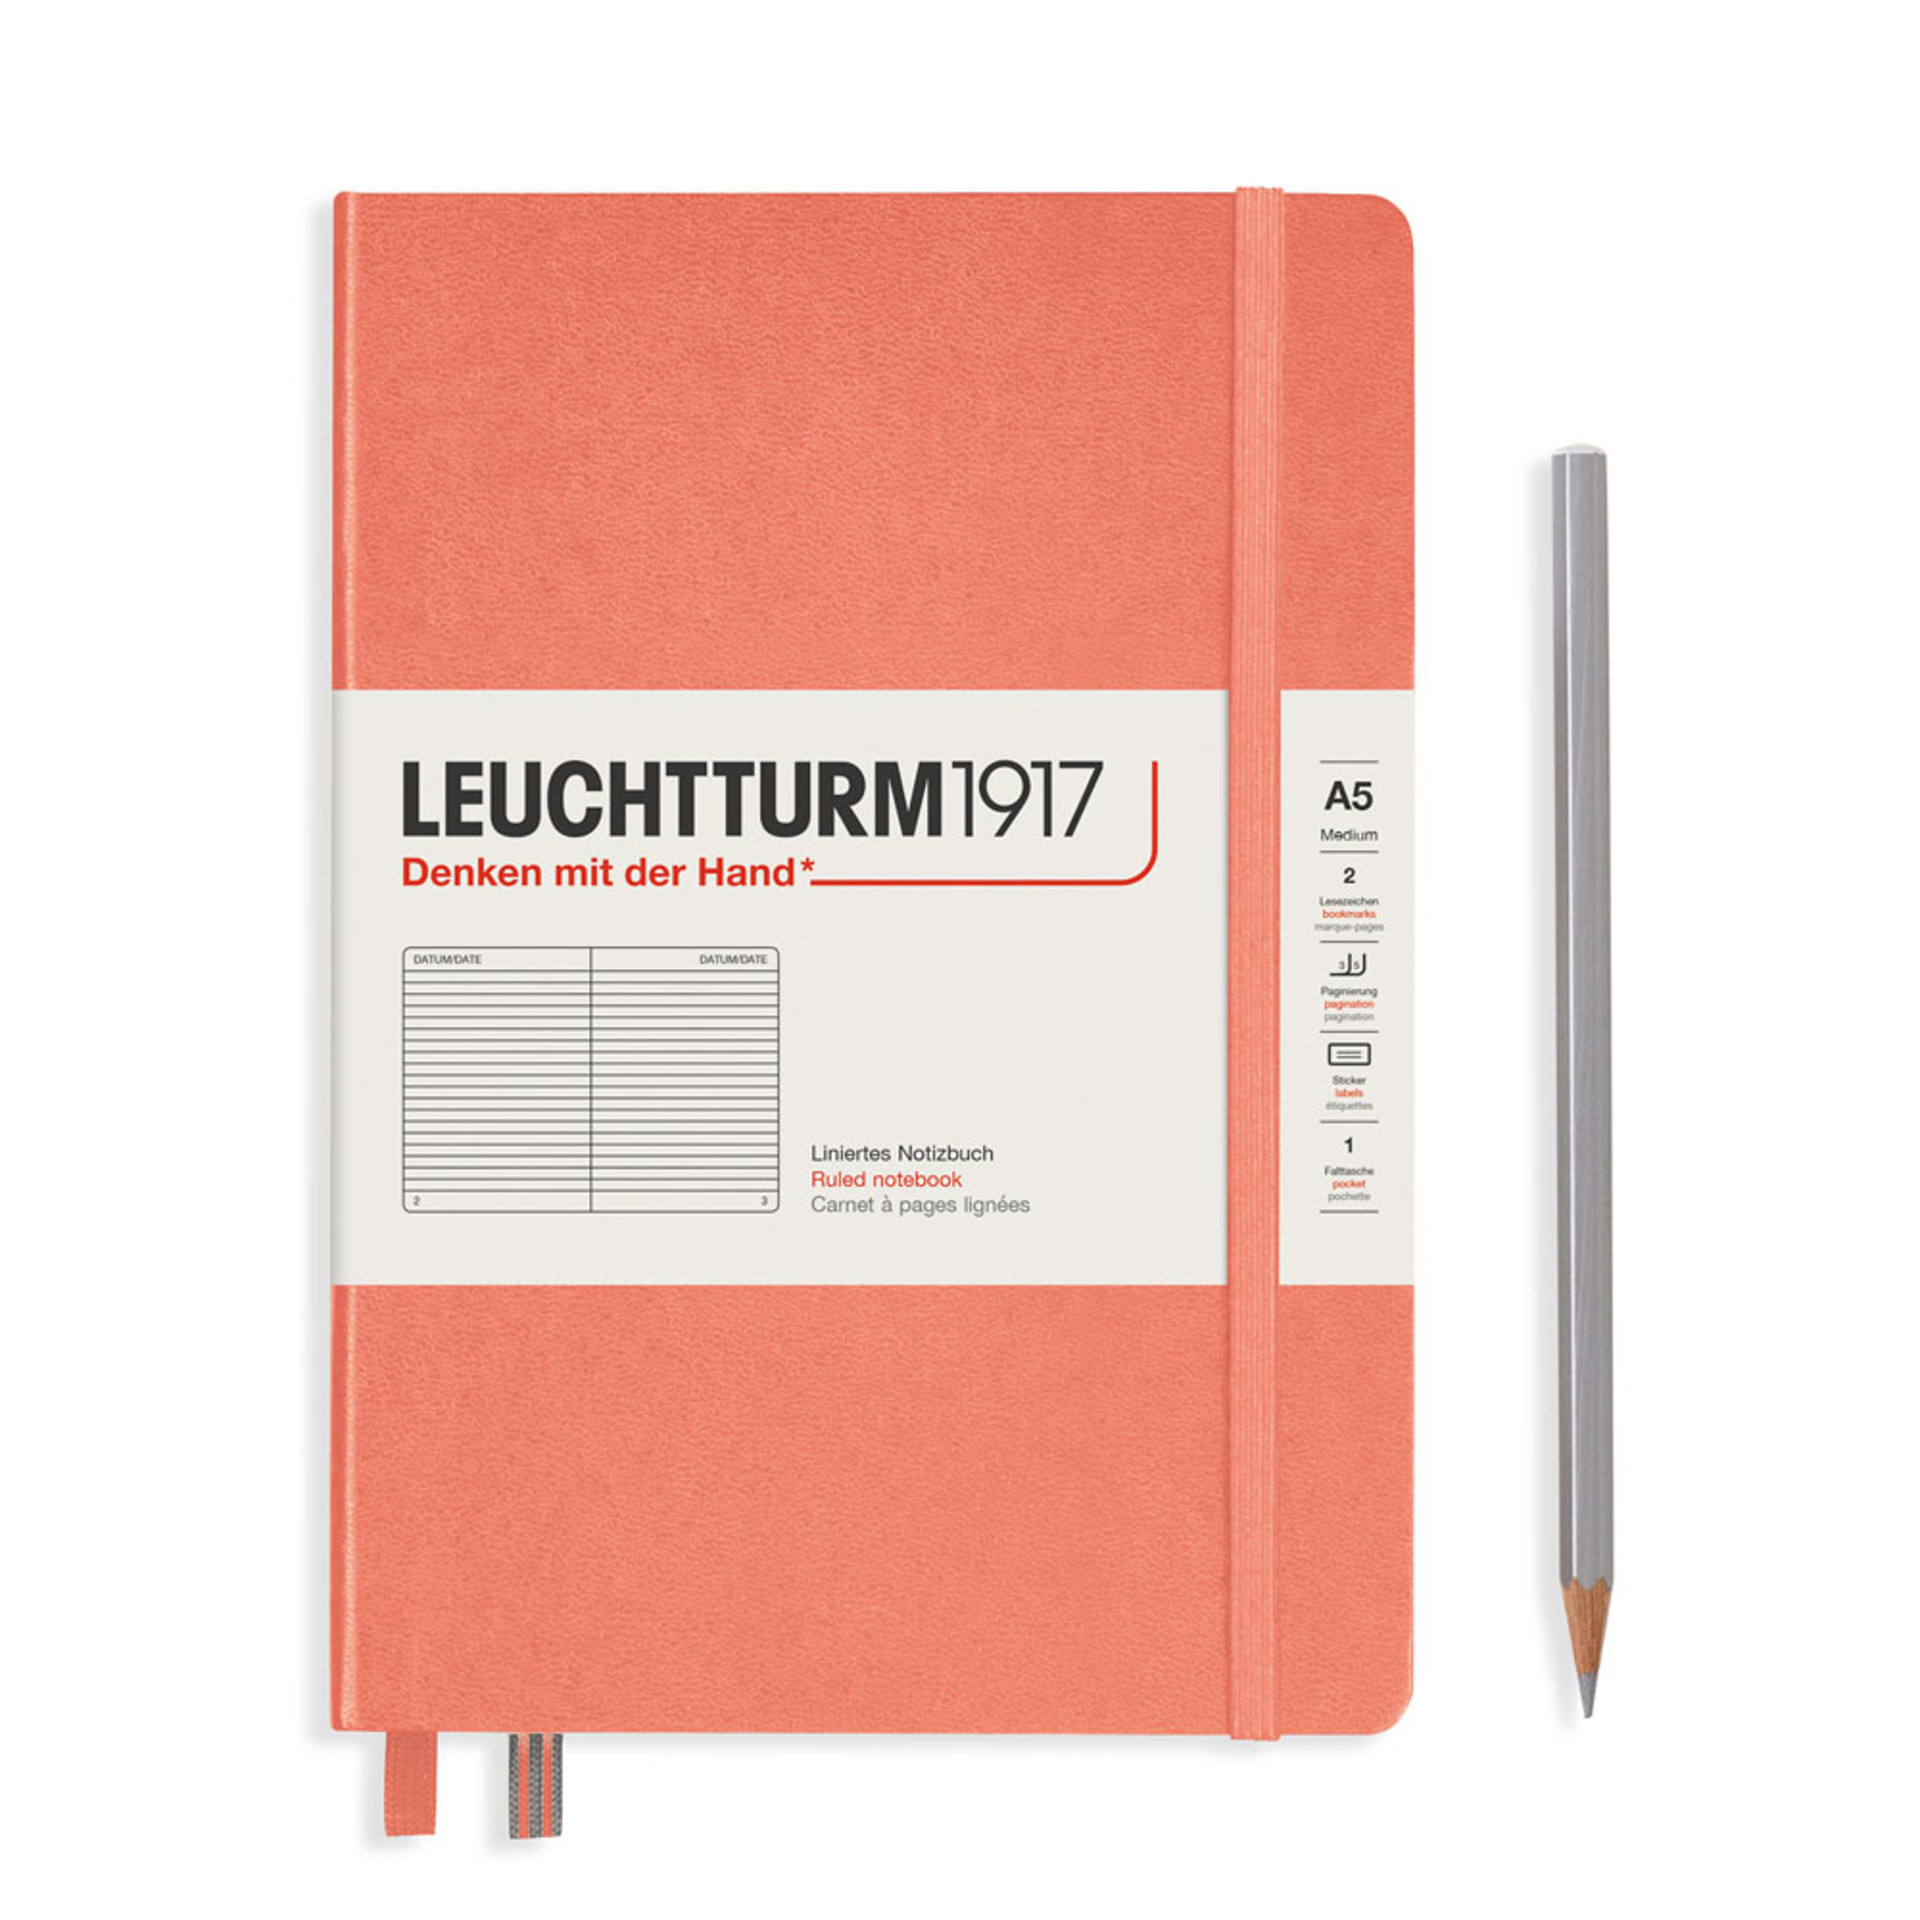 Leuchtturm 1917 A5 Medium Hardcover Notebook – Bellini – Ruled